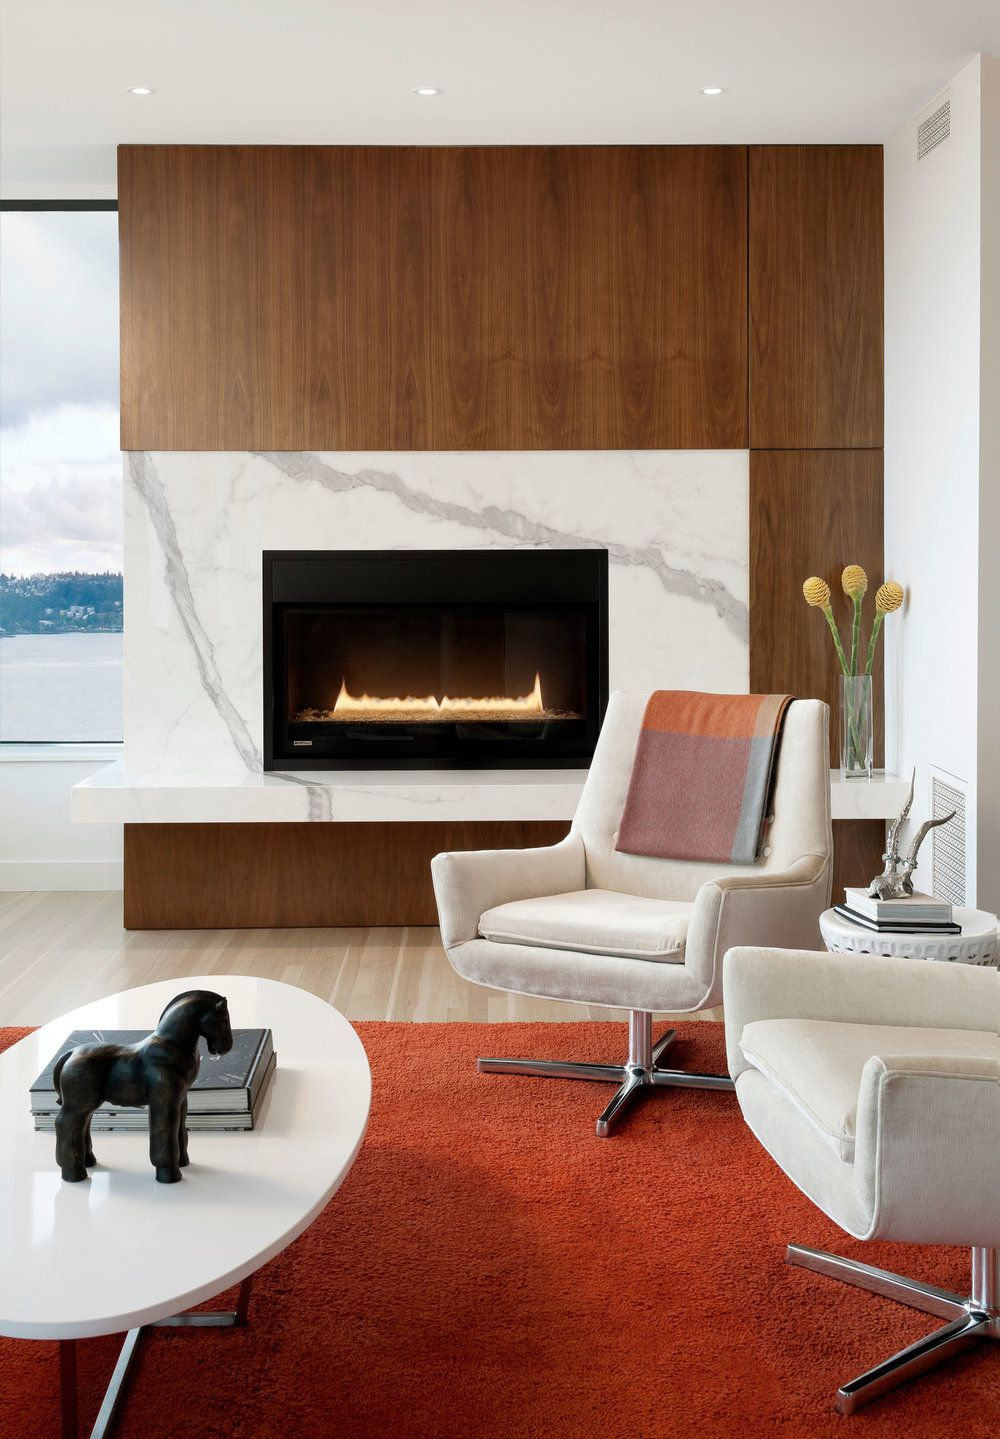 Responsive To Our Clients Vision NB Design Group Is A Seattle Based Interior